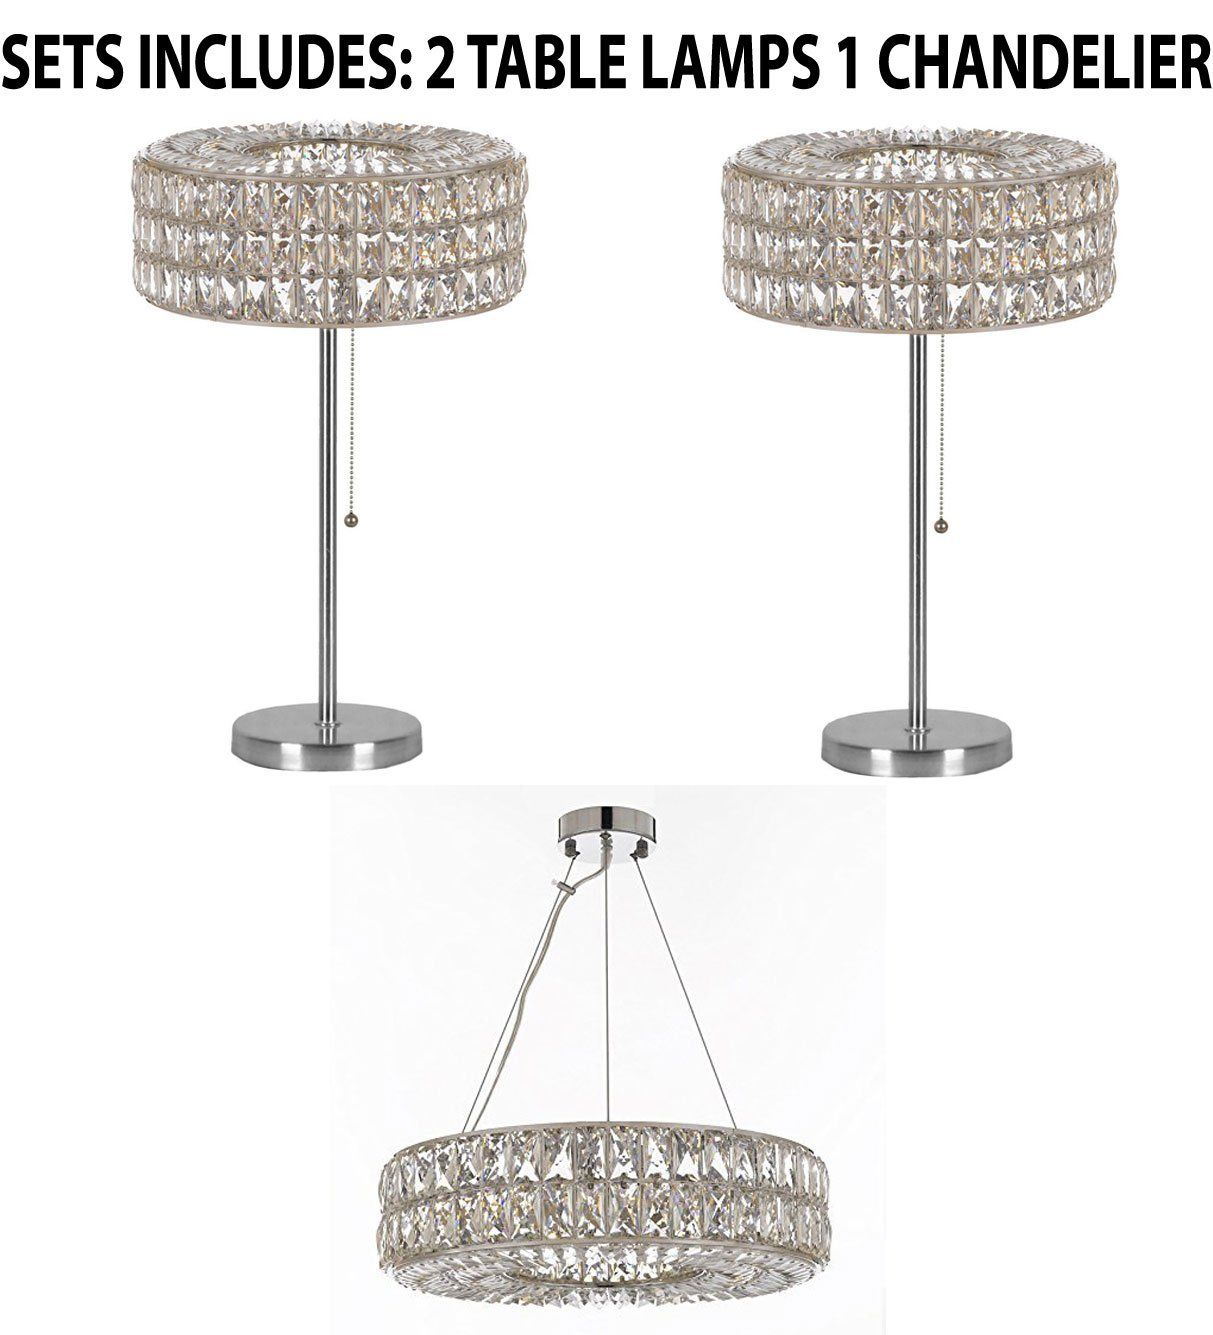 Set Of 3 2 Crystal Spiridon Ring Modern Contemporary Table Lamp Lighting H 28 W15 And 1 Cryst Contemporary Table Lamps Table Lamp Lighting Modern Chandelier